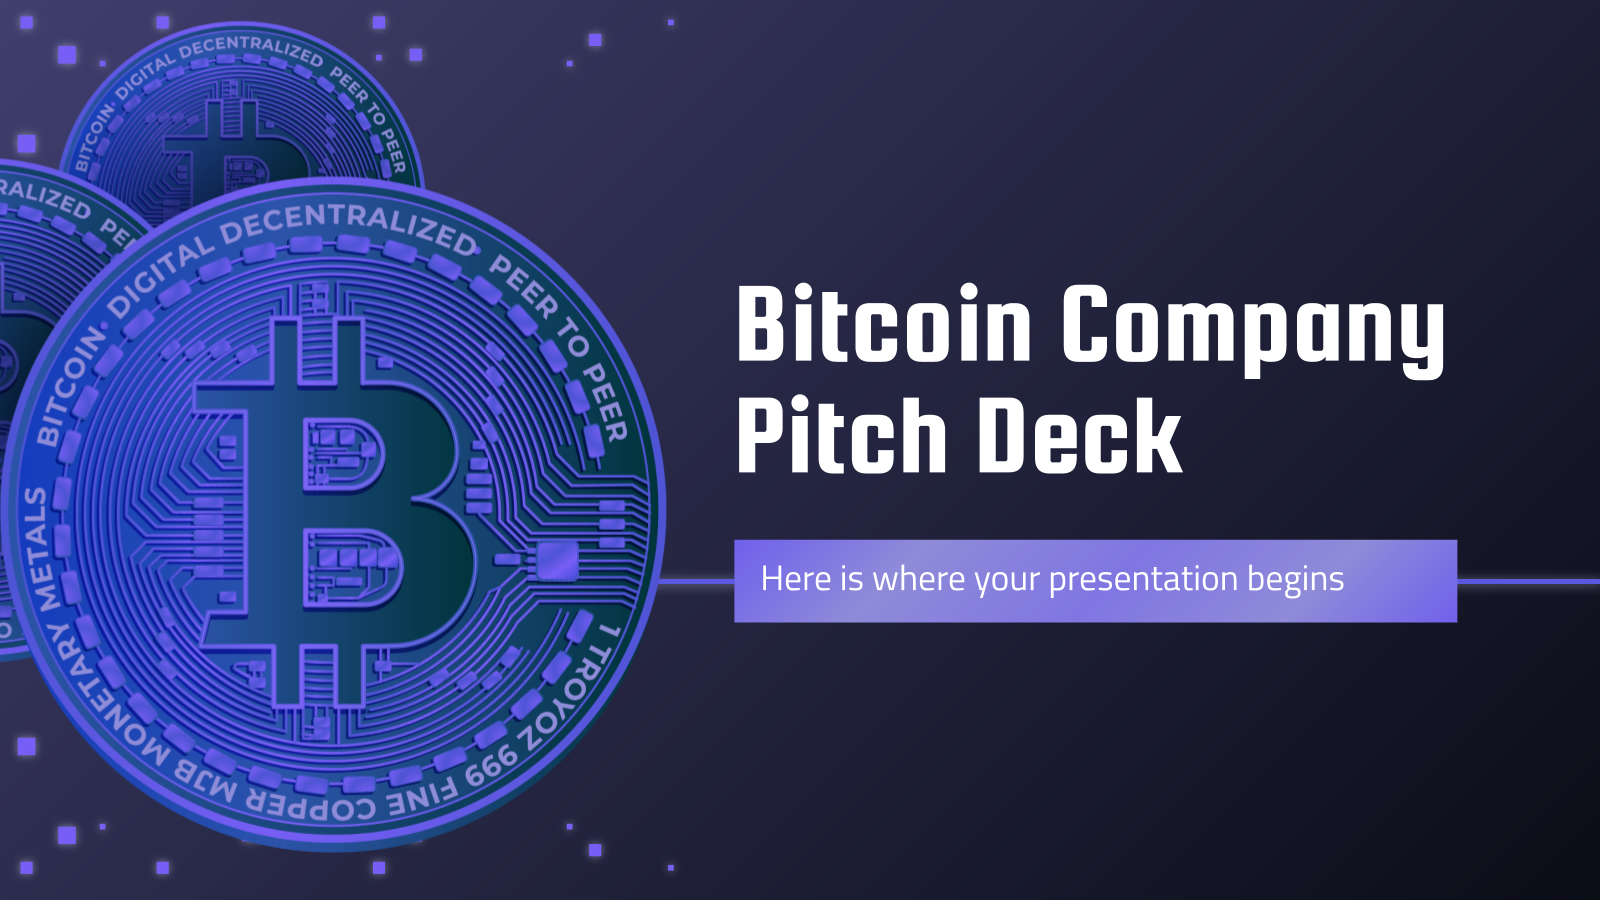 Bitcoin Company Pitch Deck presentation template